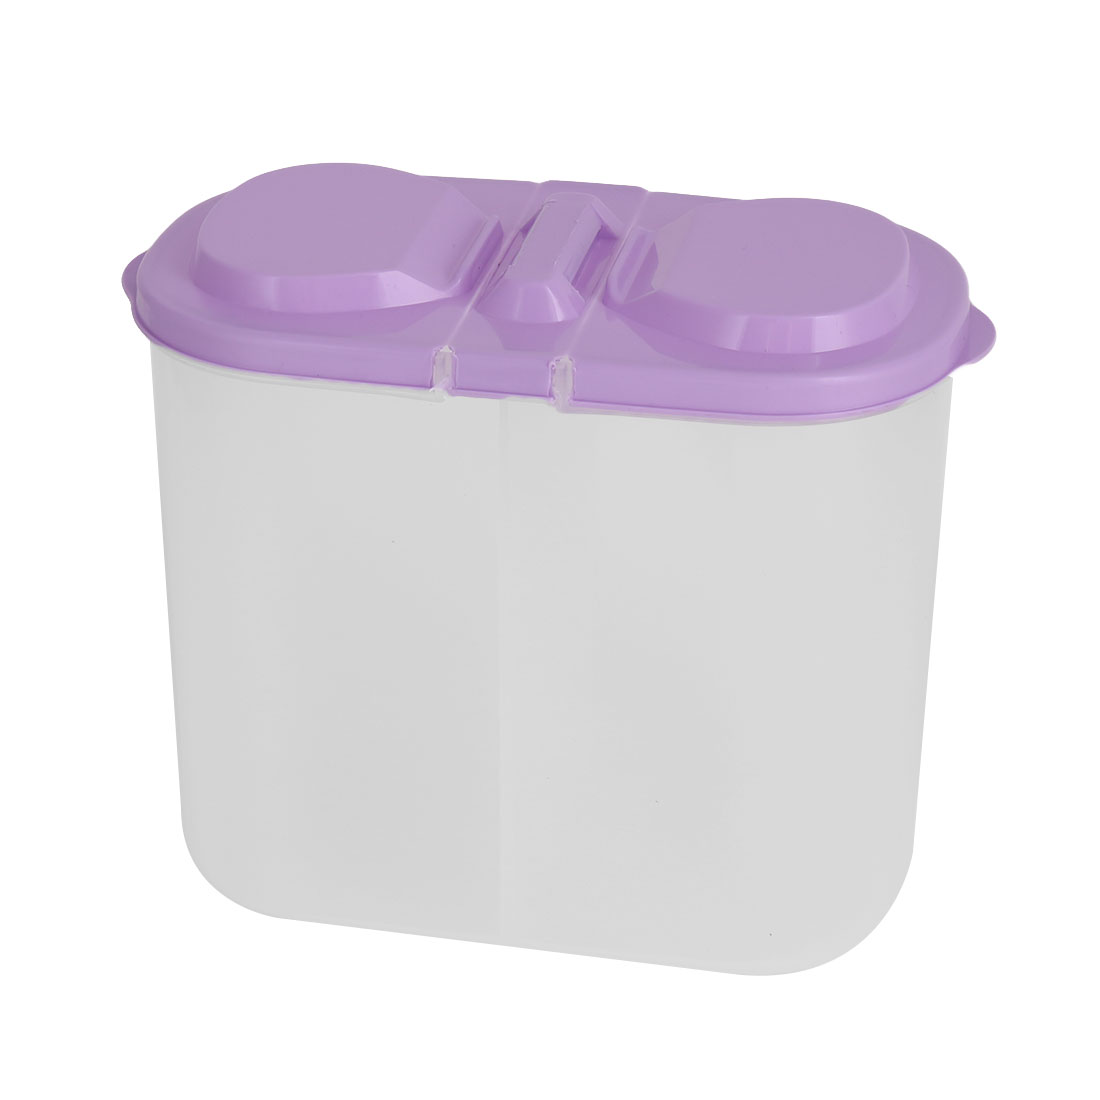 Household Plastic 2 Compartments Food Vegetable Fruit Storage Container Box Purple